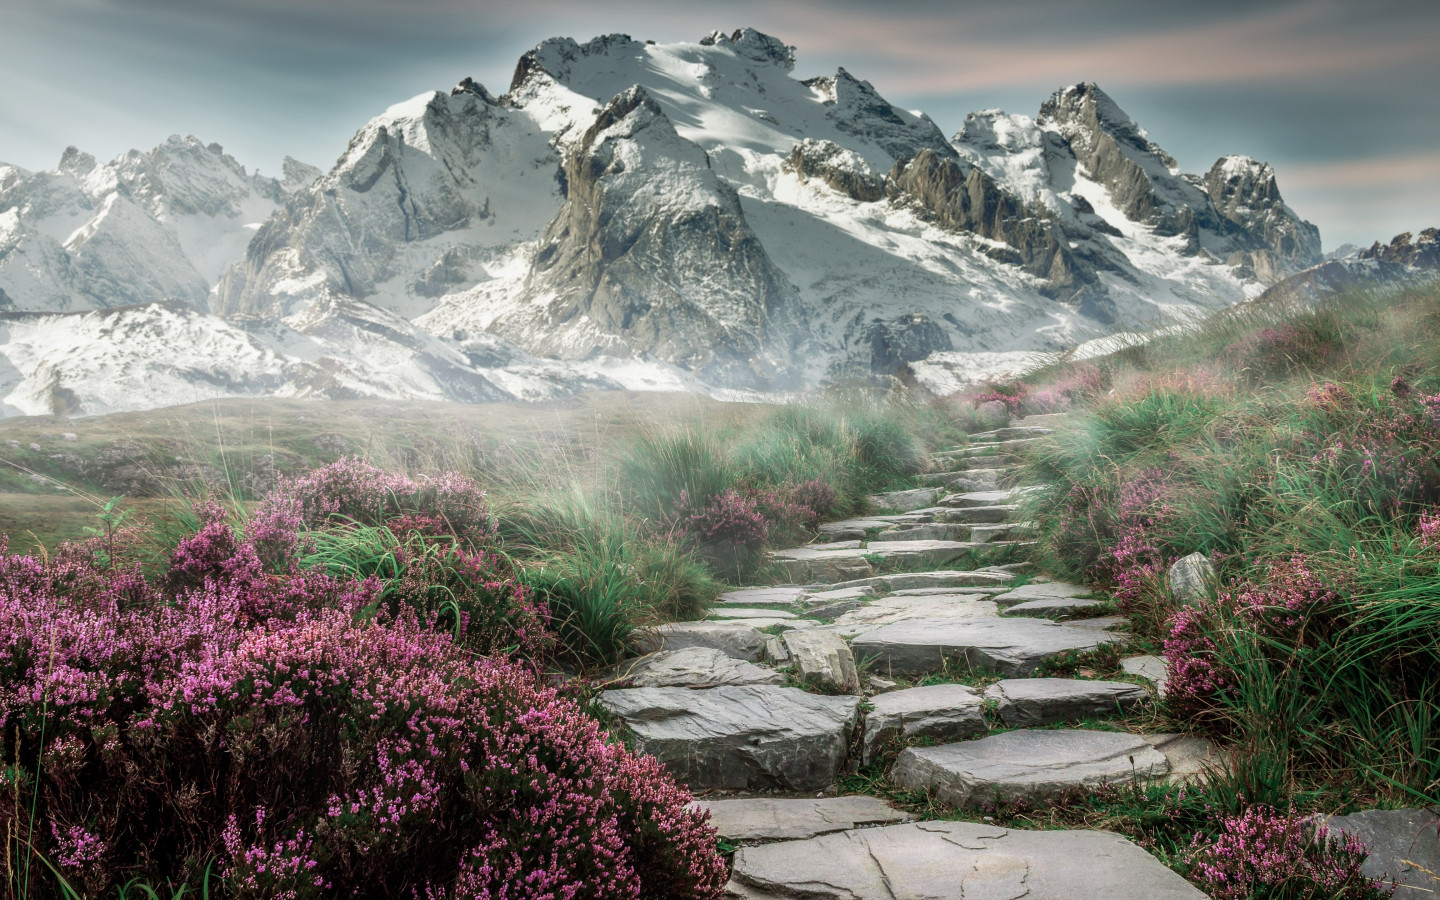 Surreal mountain landscape wallpaper 1440x900